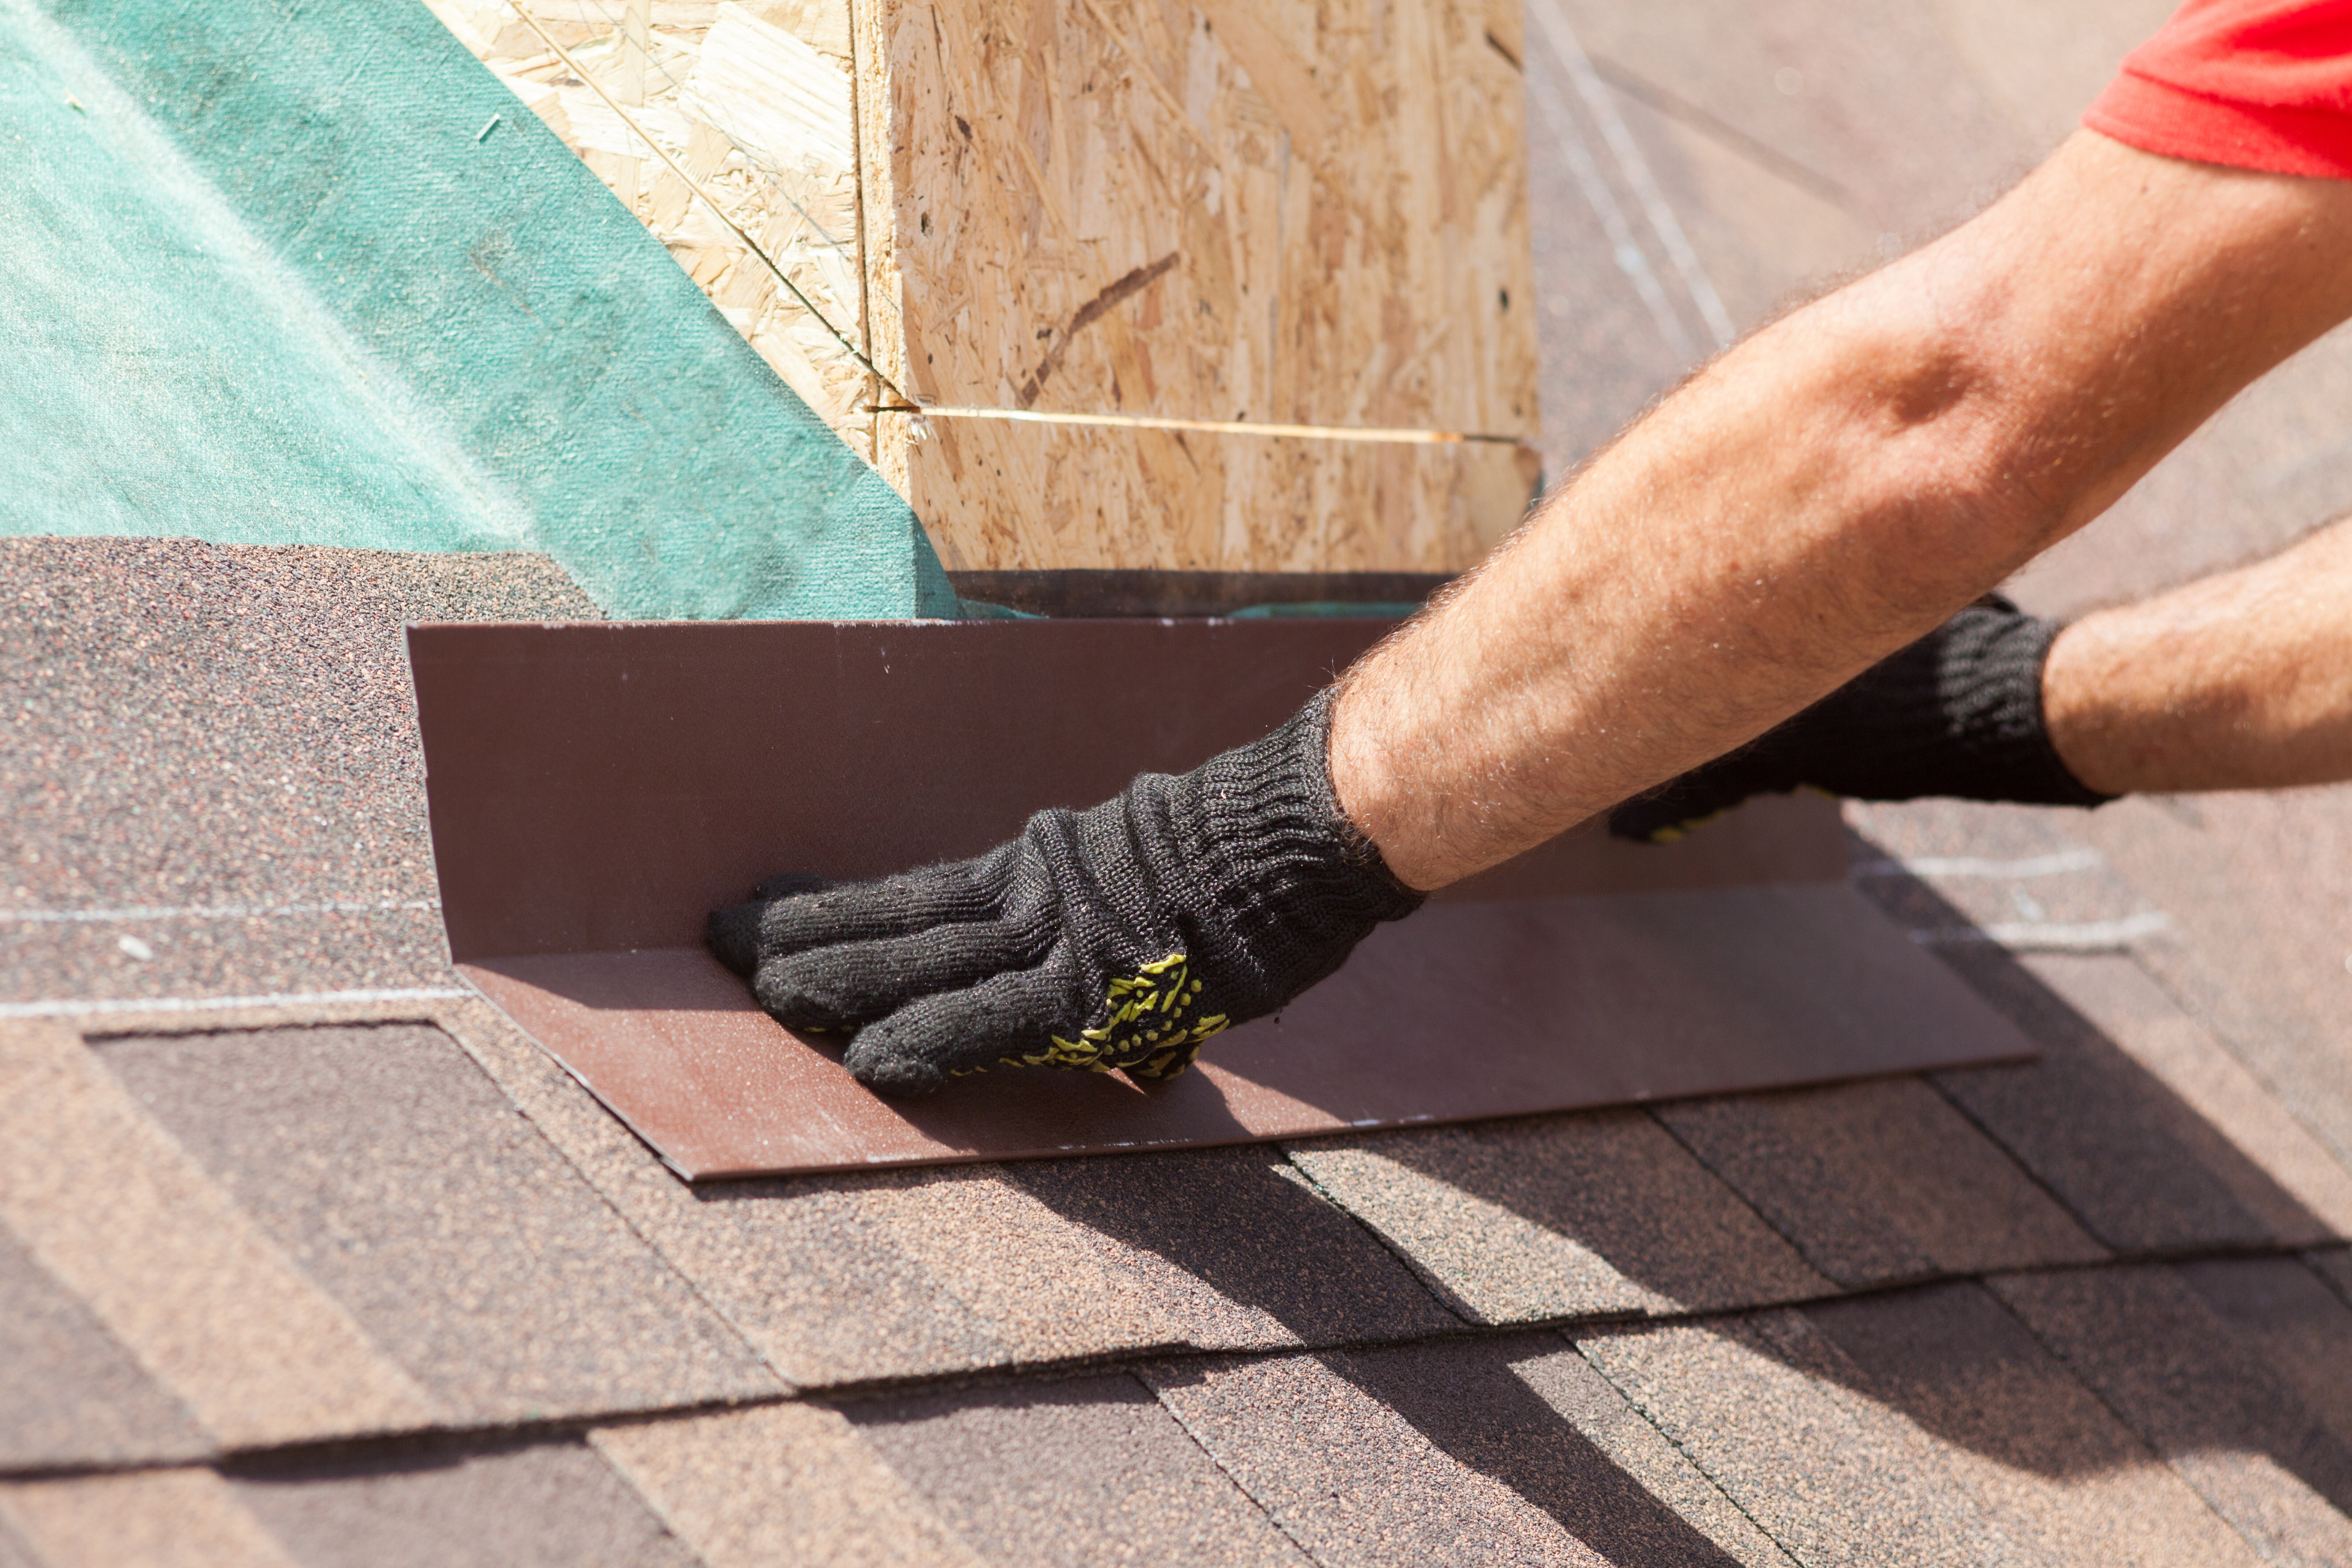 Roof Shingles Are Not Lying Flat | Home Guides | SF Gate